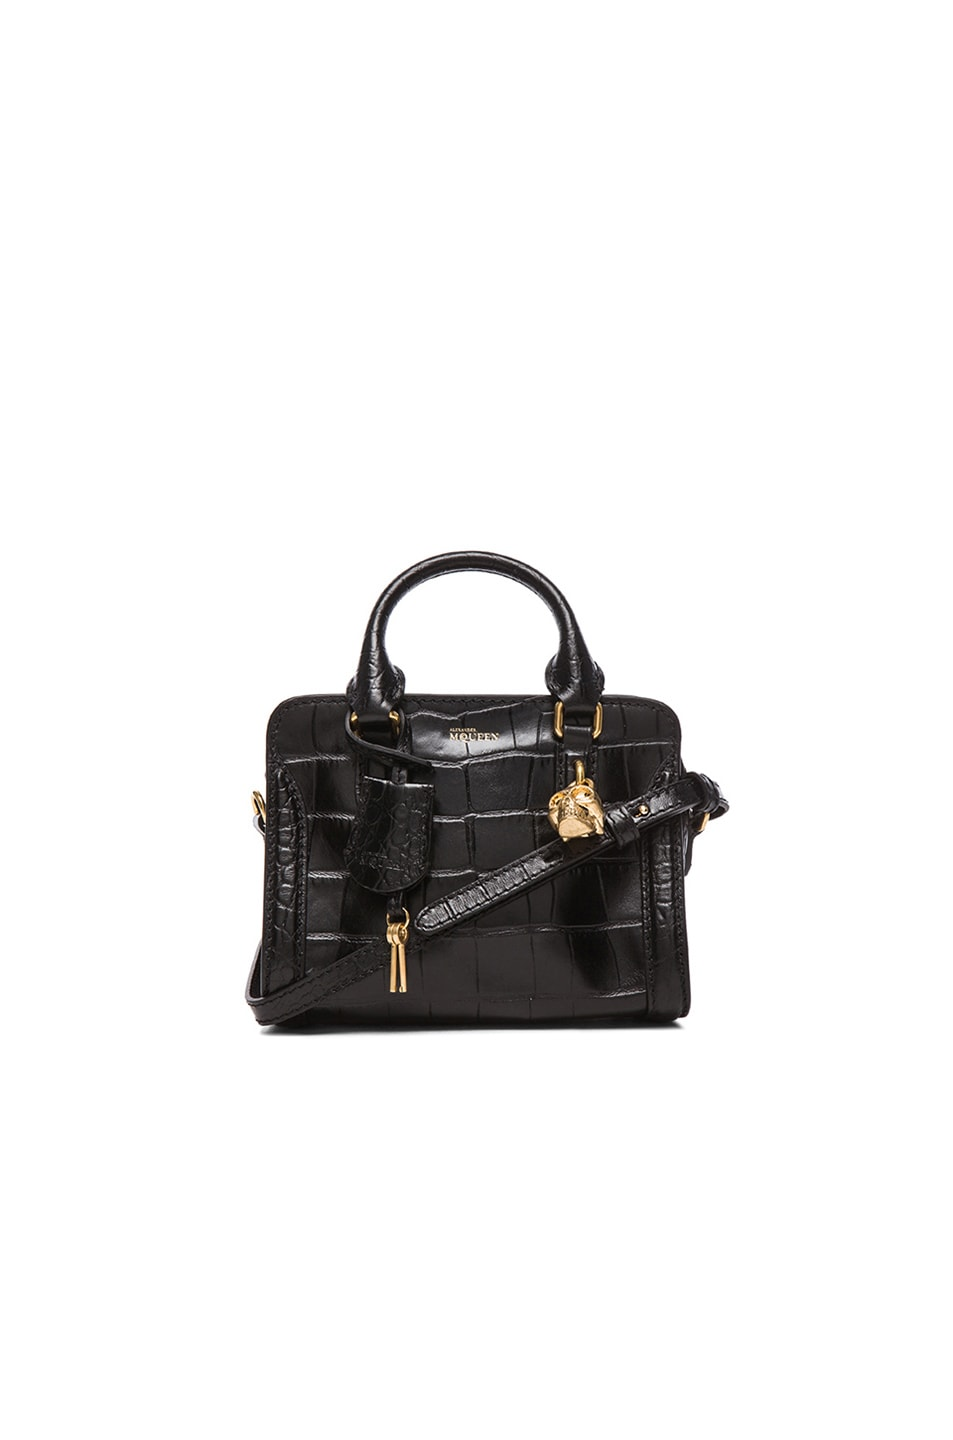 bd28a22c3a Image 1 of Alexander McQueen Croc Embossed Mini Padlock in Black